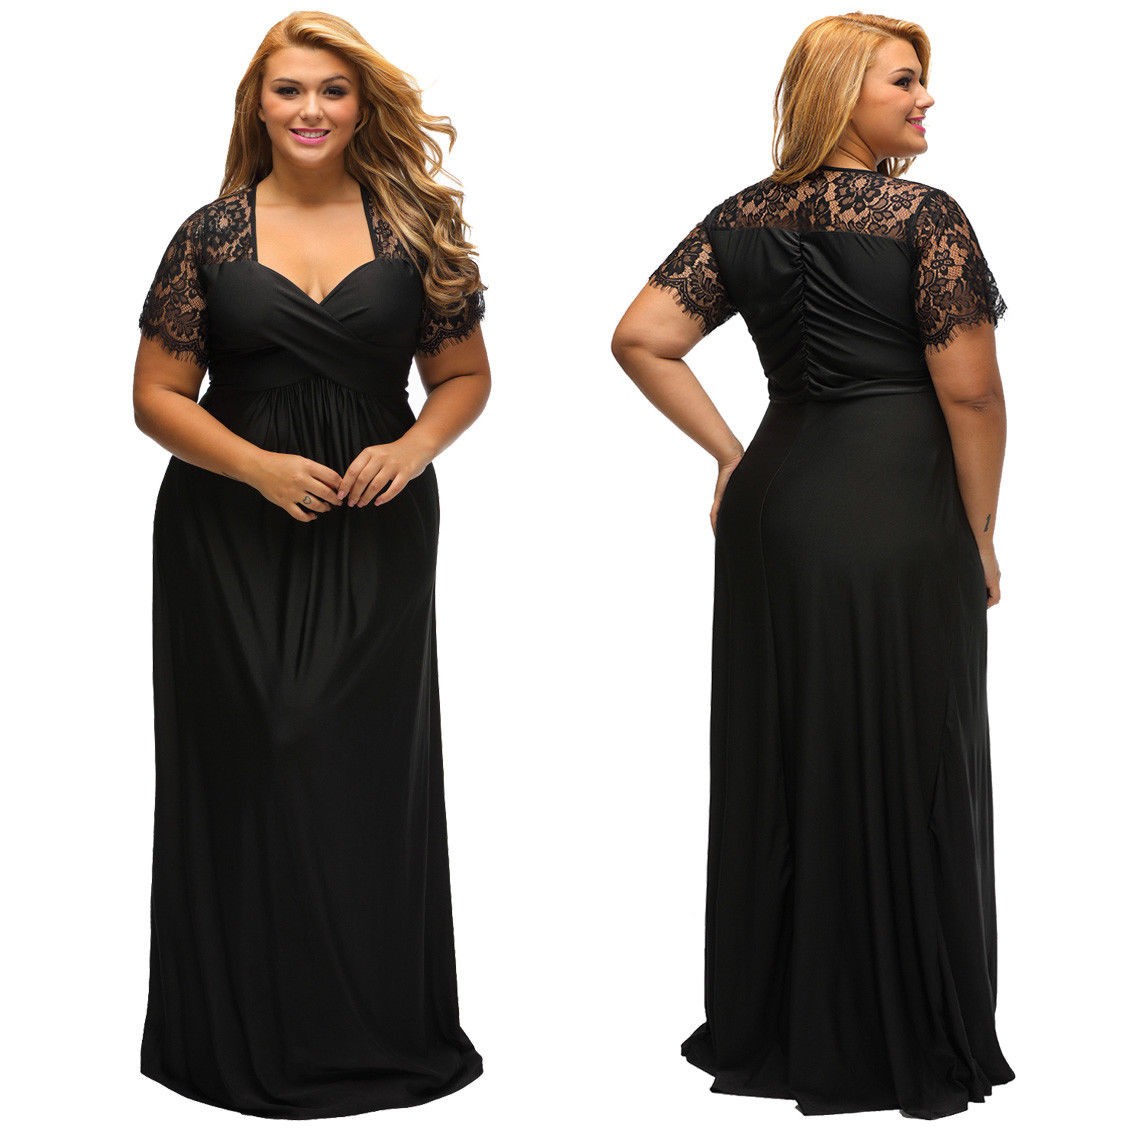 Womens Cocktail Dresses Fashion Futuristic: Cool USA Plus Size Womens Formal Gown Wedding Bridesmaid